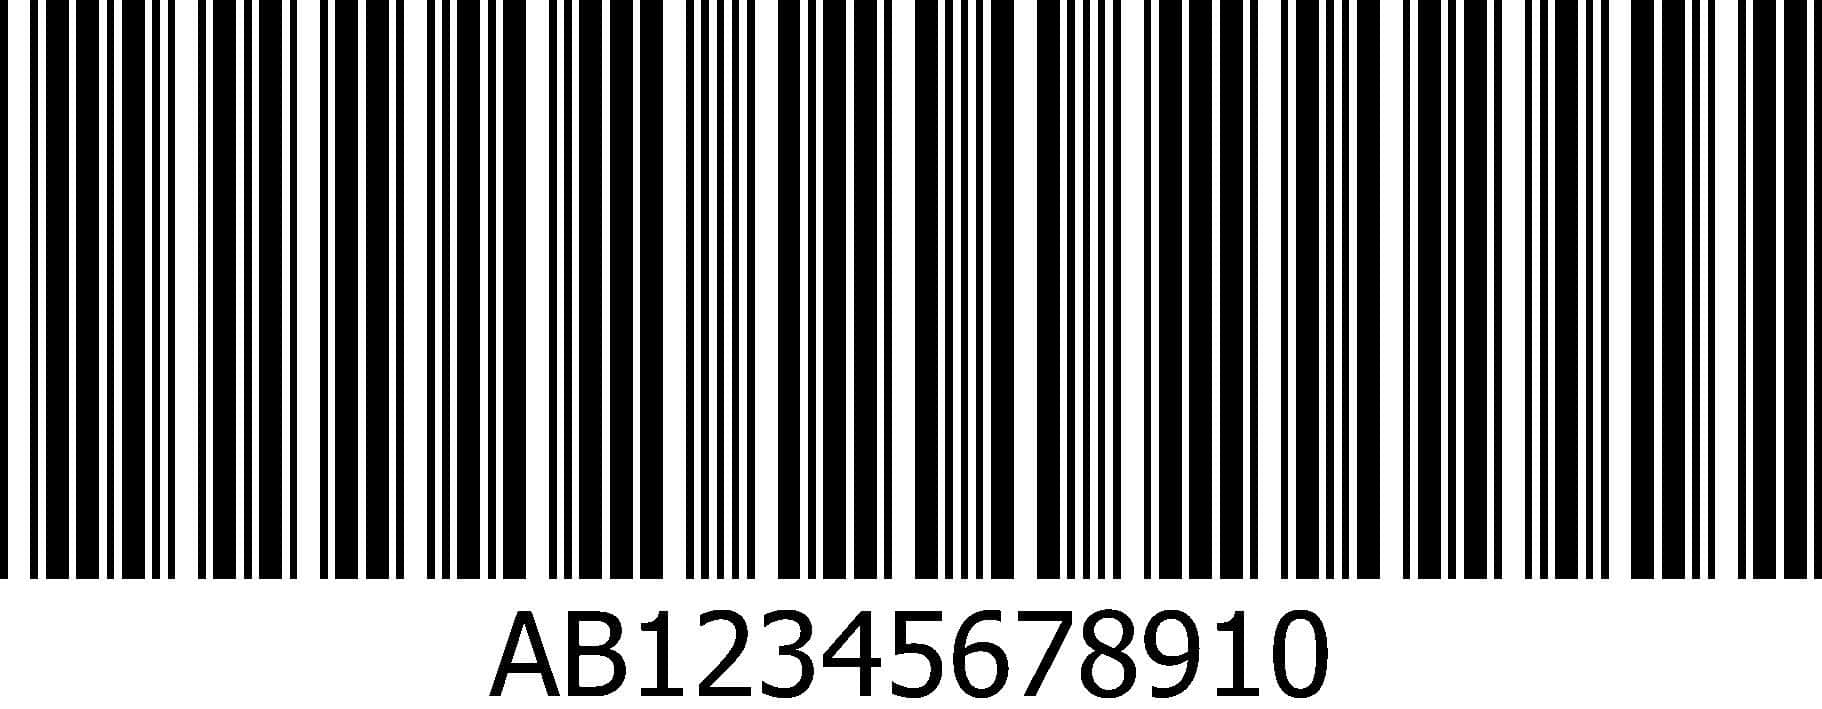 barcode thesis documentation How to organize scanned documents using barcodes and document capture software barcode document scanning guide so you want to organize your documents using barcodes.